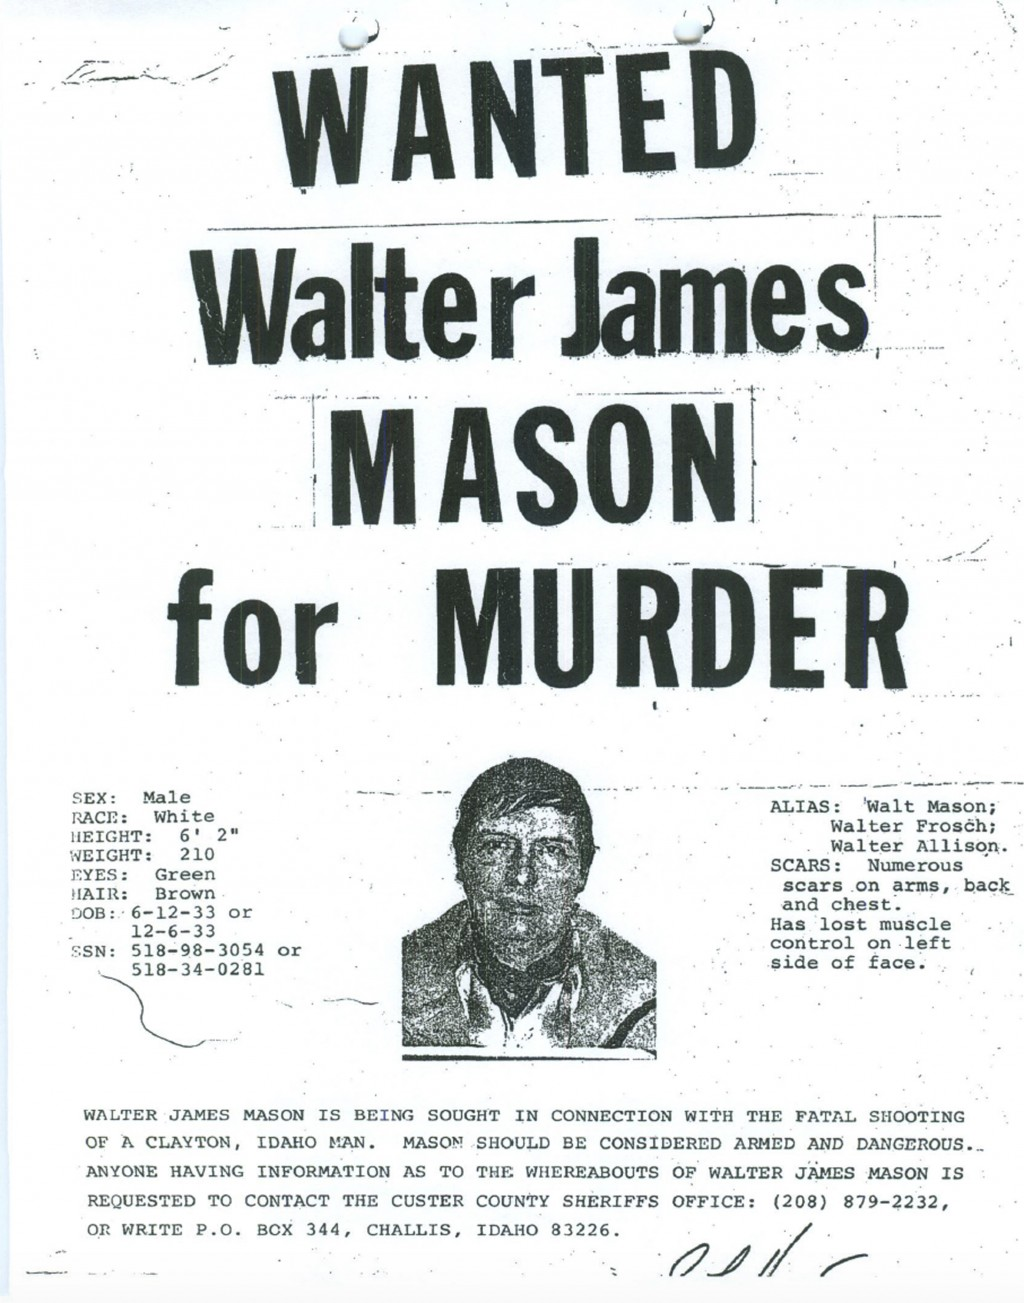 This 1980 wanted poster from the Custer County Sheriff's Office shows Walter James Mason as they sought him on a murder charge. Forty years ago, Brett...